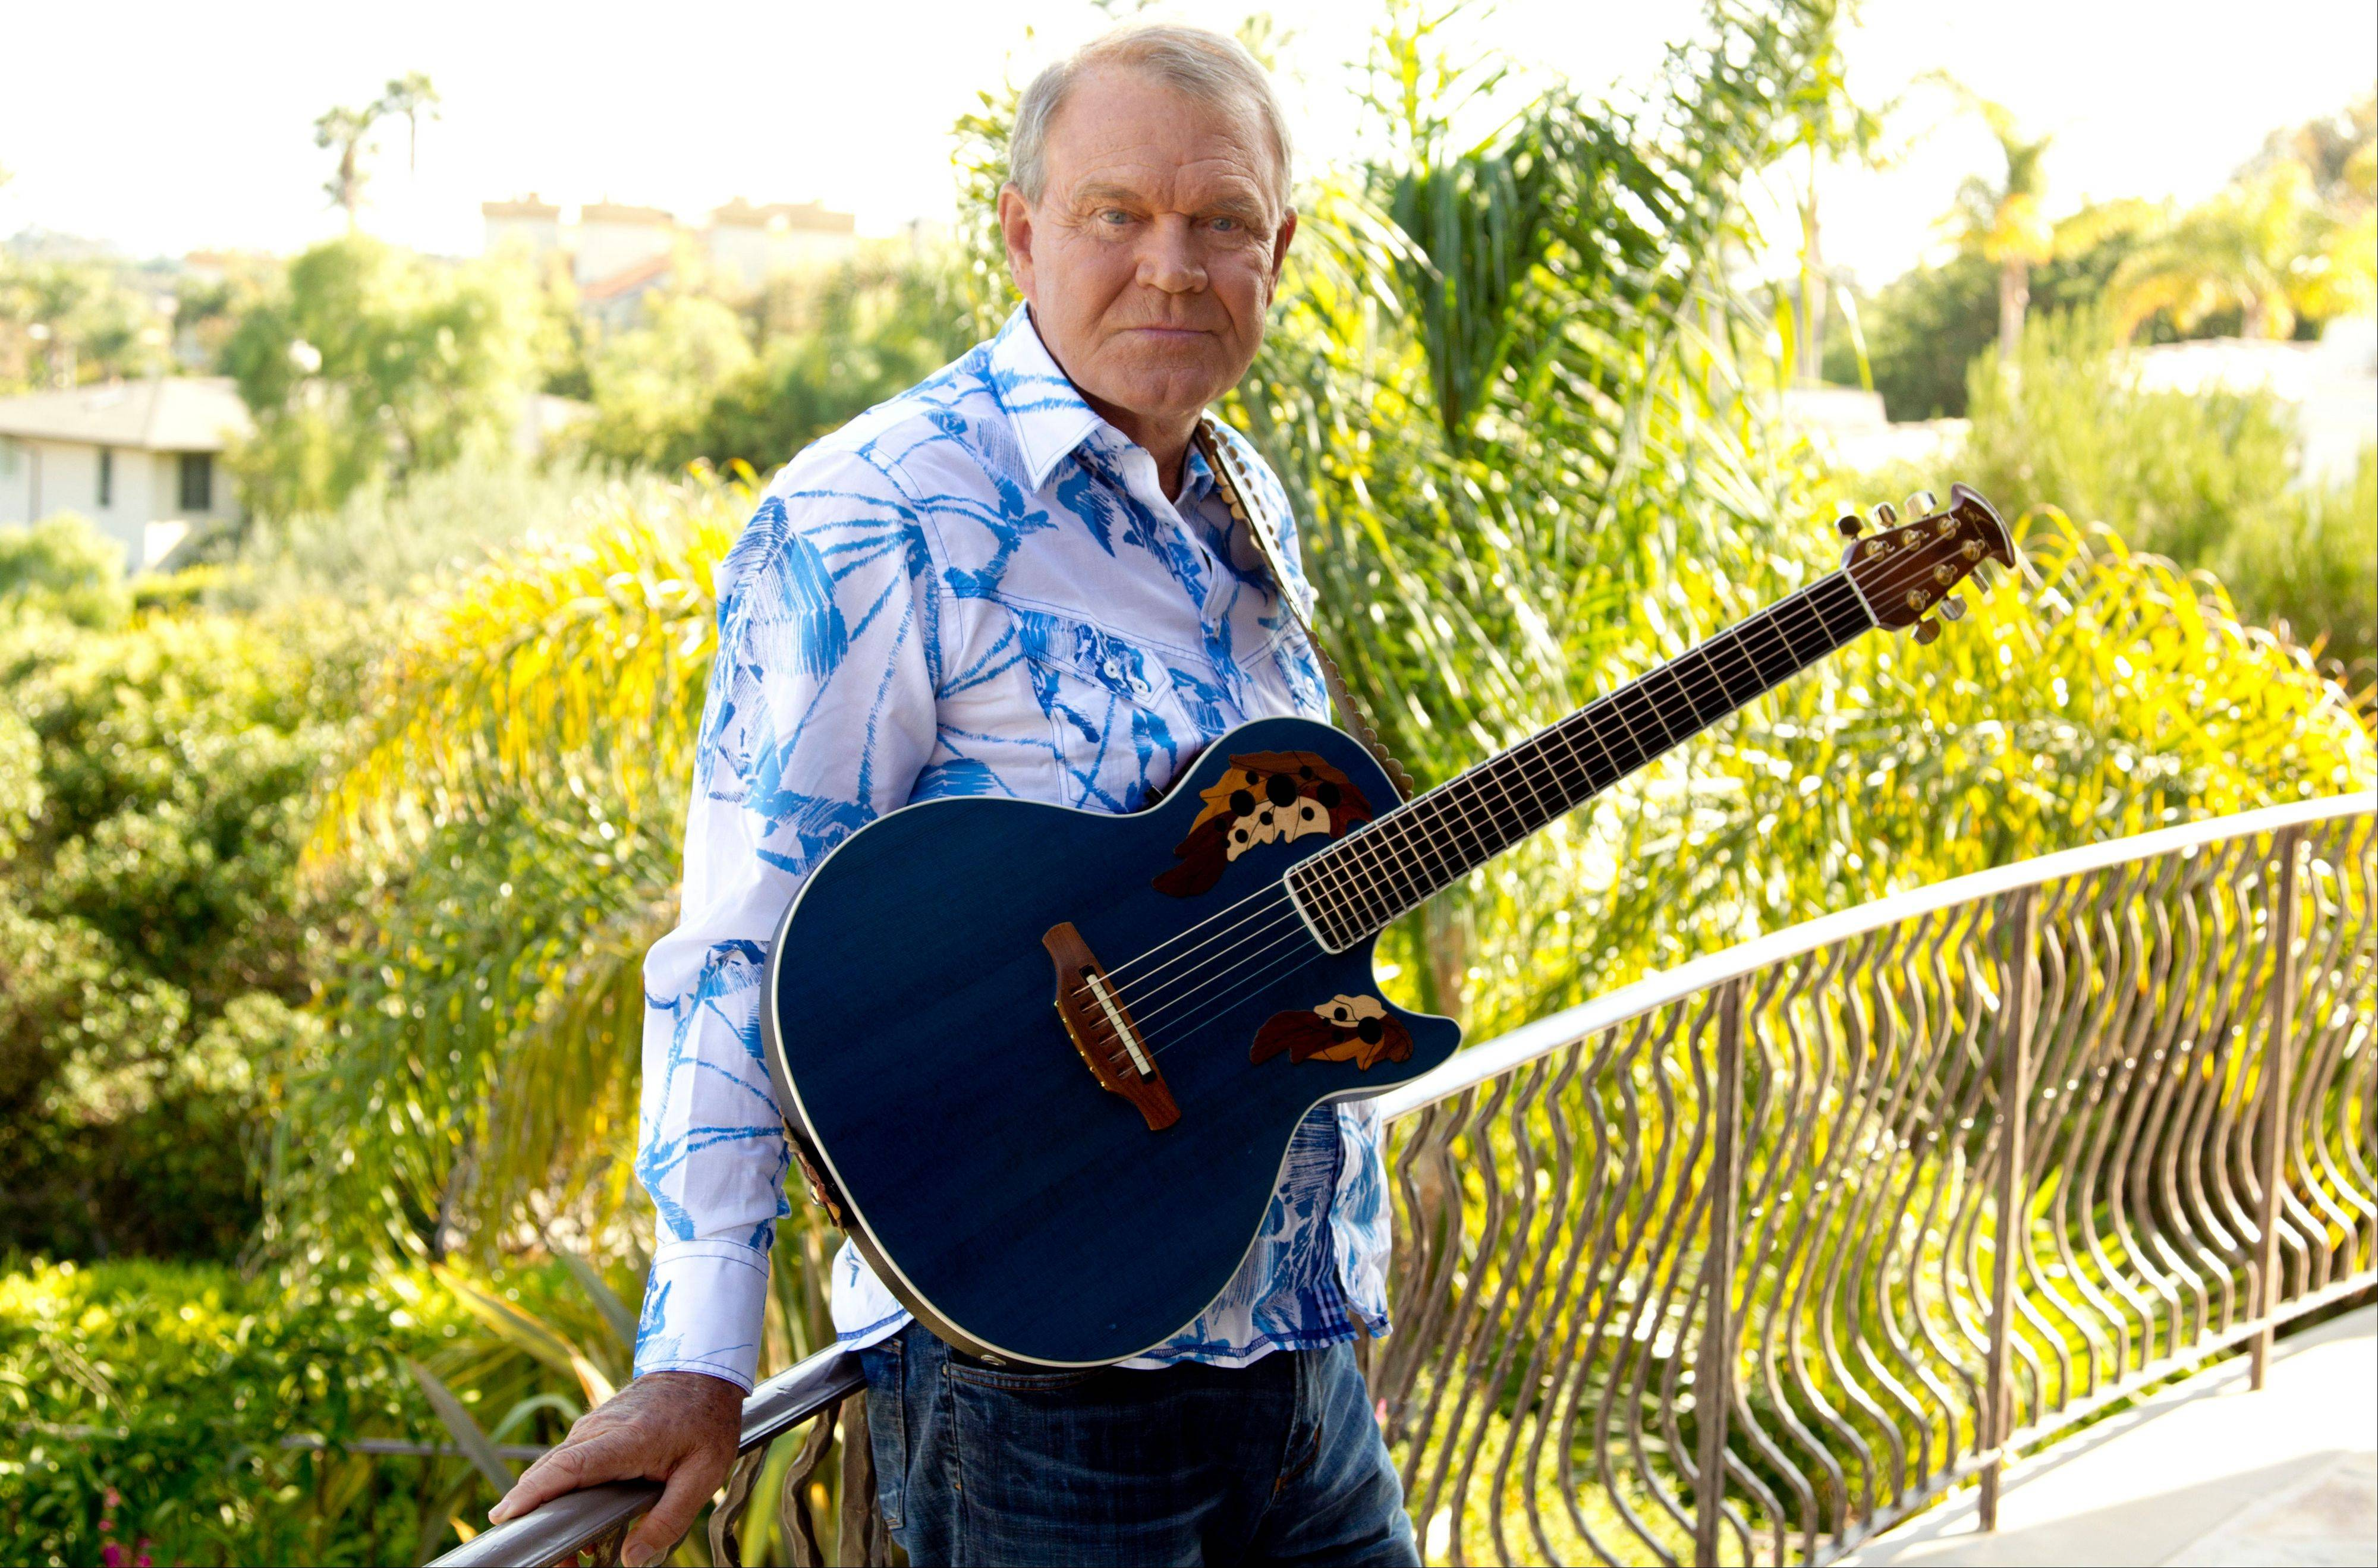 In this July 27, 2011 photo, musician Glen Campbell poses for a portrait in Malibu, Calif. Campbell, who was diagnosed with Alzheimer's disease, is planning a farewell tour before retiring from the music. (AP Photo/Matt Sayles)